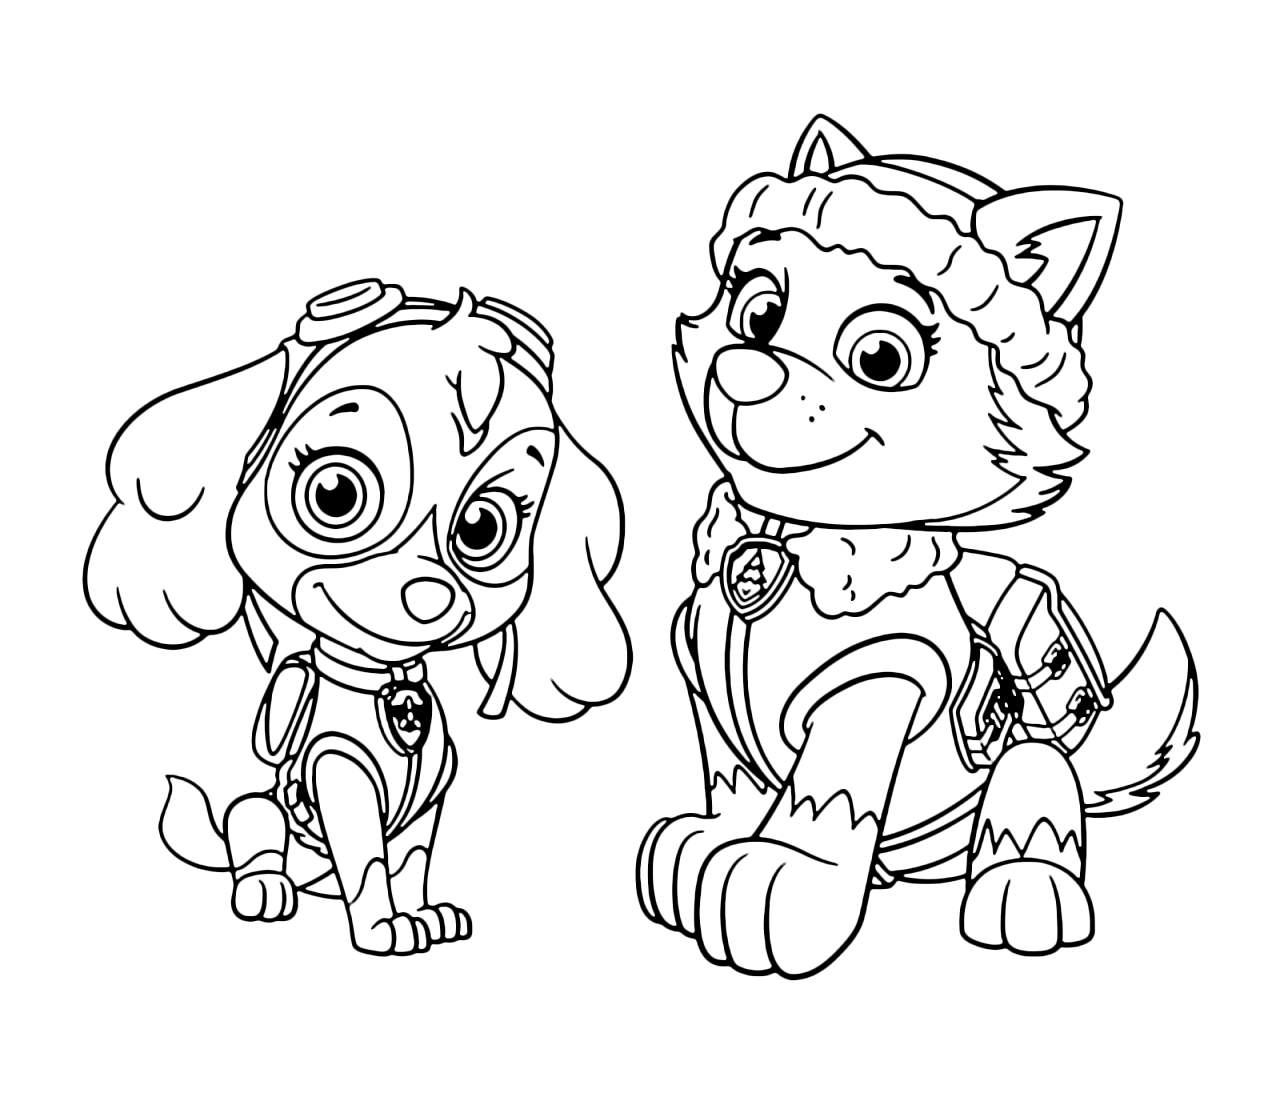 everest paw patrol coloring everest paw patrol coloring pages at getdrawings free everest paw coloring patrol